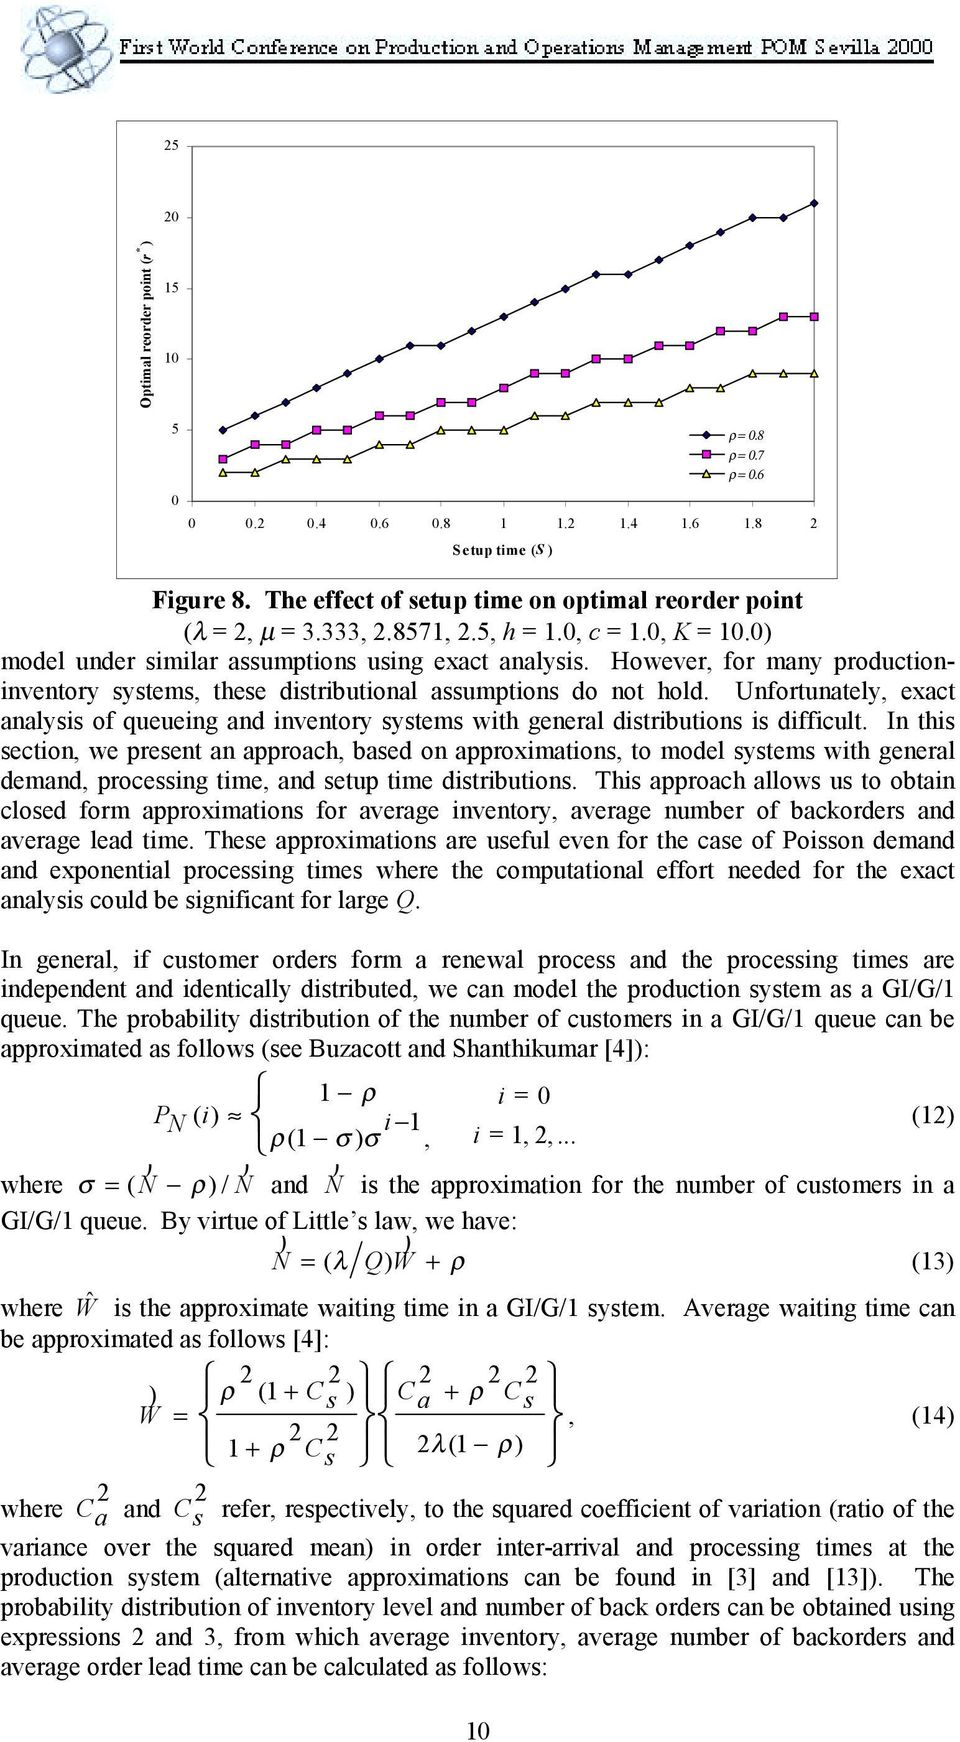 In this section we pesent an appoach based on appoximations to model systems with geneal demand pocessing time and setup time distibutions.